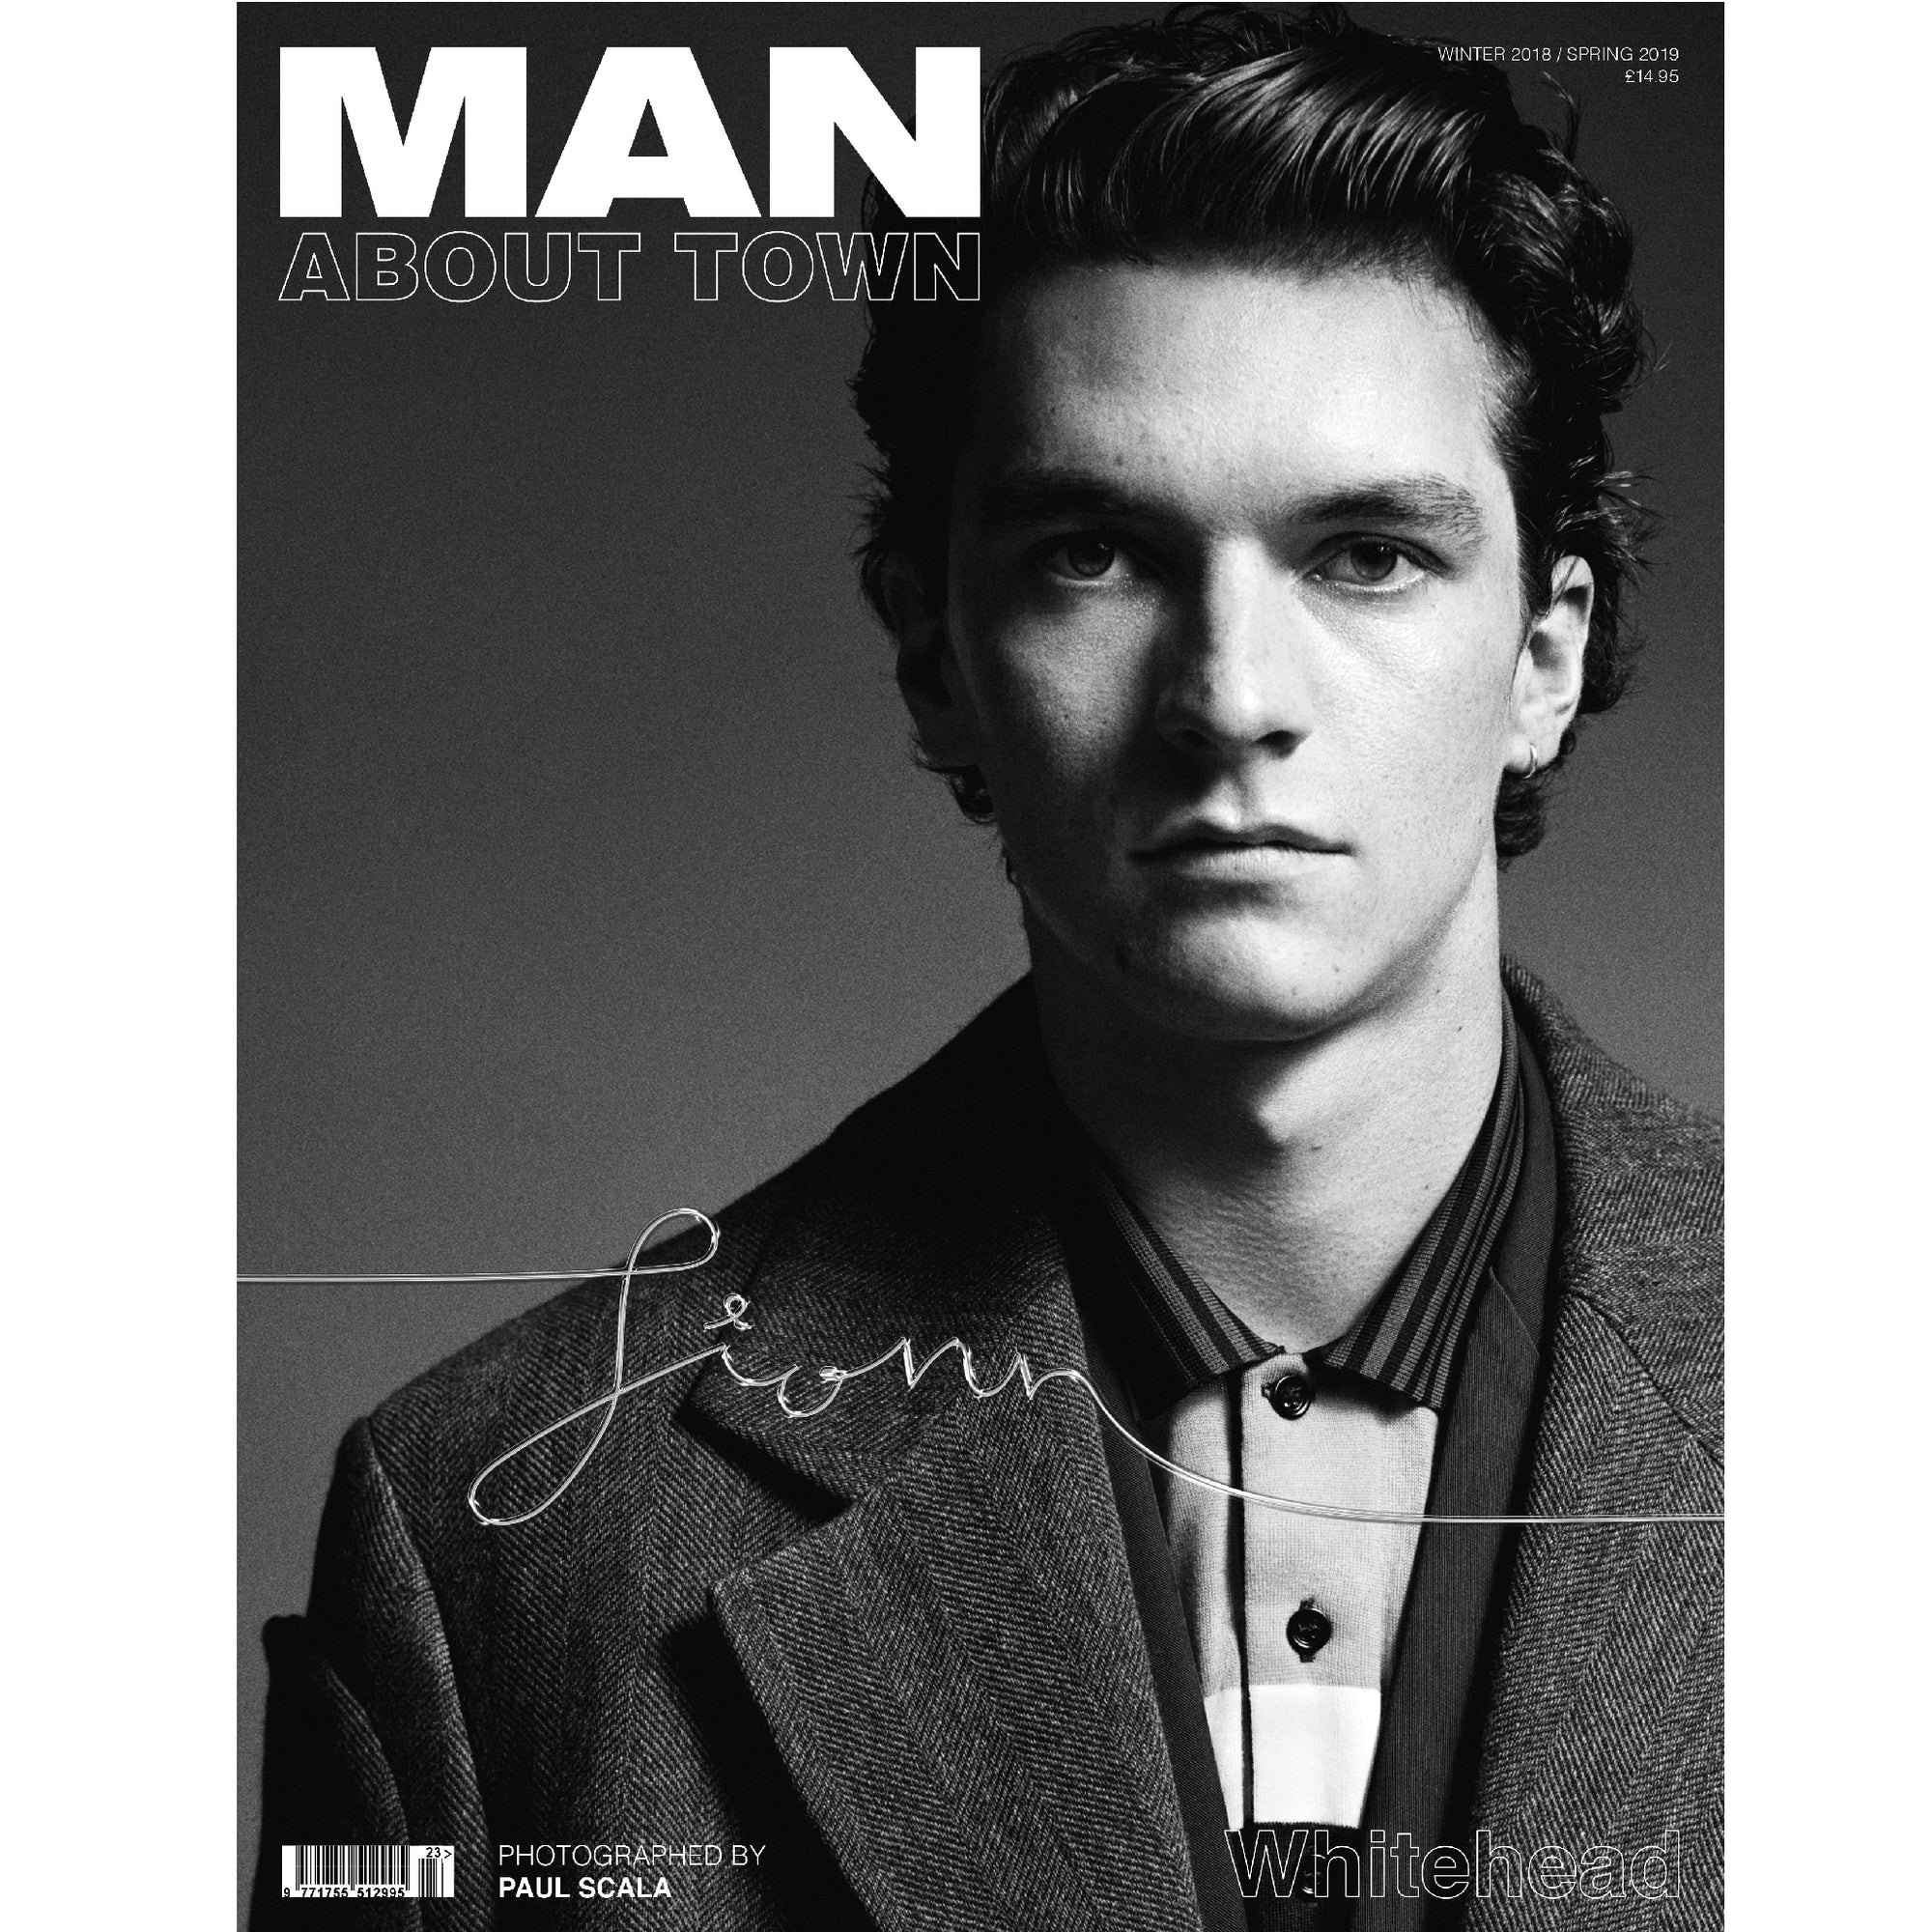 FIONN WHITEHEAD - Man About Town Winter 2018 / Spring 2019 Magazine